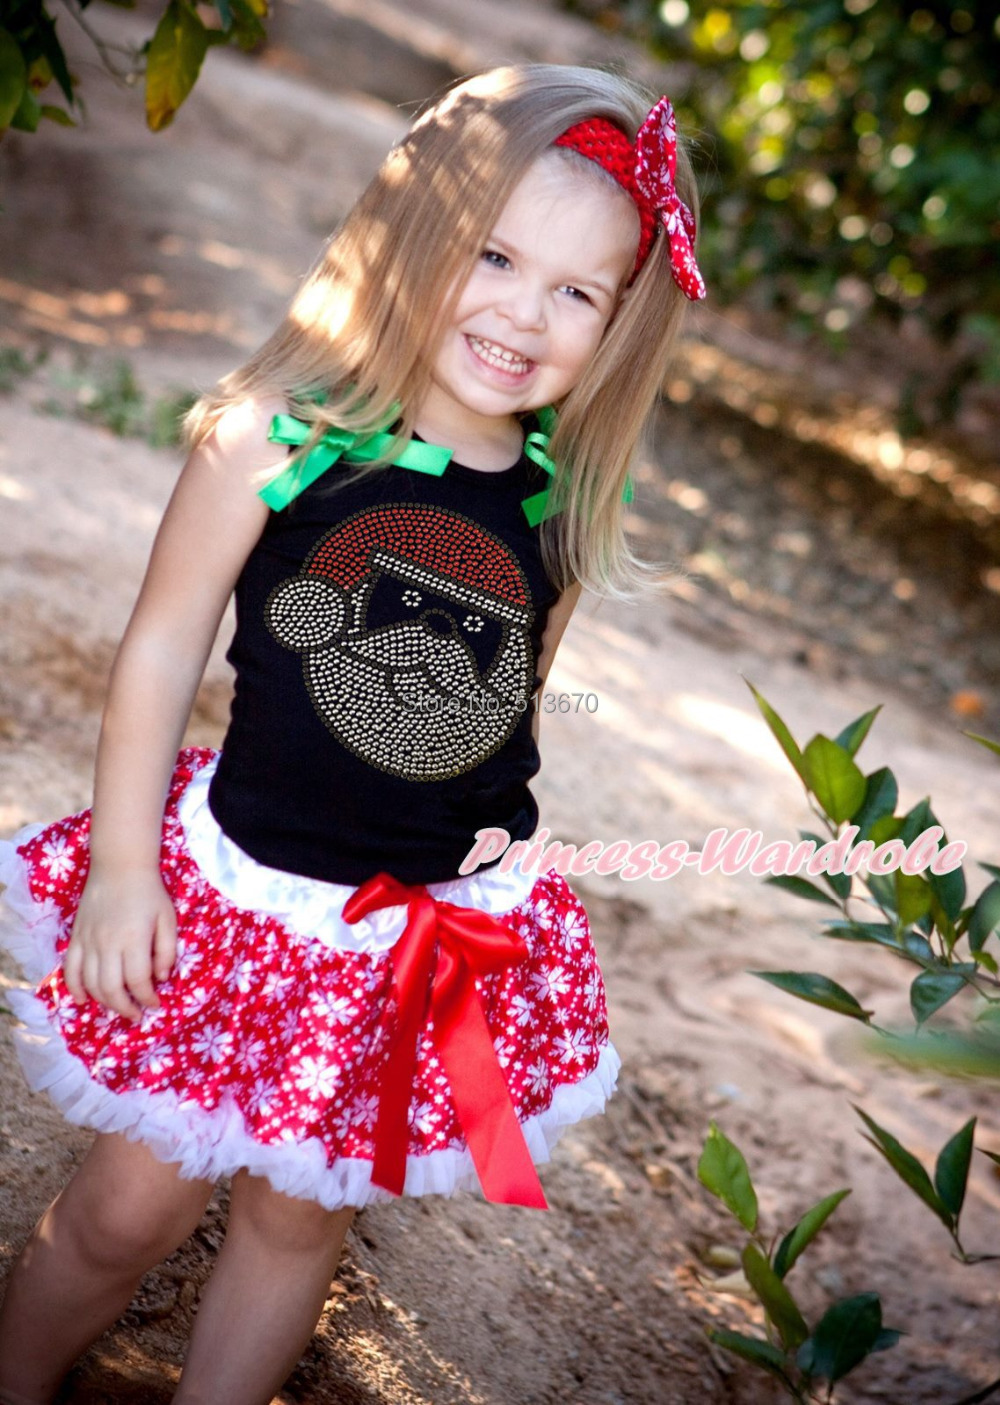 XMAS Rhinestone Santa Claus Black Top Snowflakes Skirt Girl Party Outfit 1-8Y MAMG211 xmas minnie snowman white shirt top santa claus skirt girl clothing outfit 1 8y